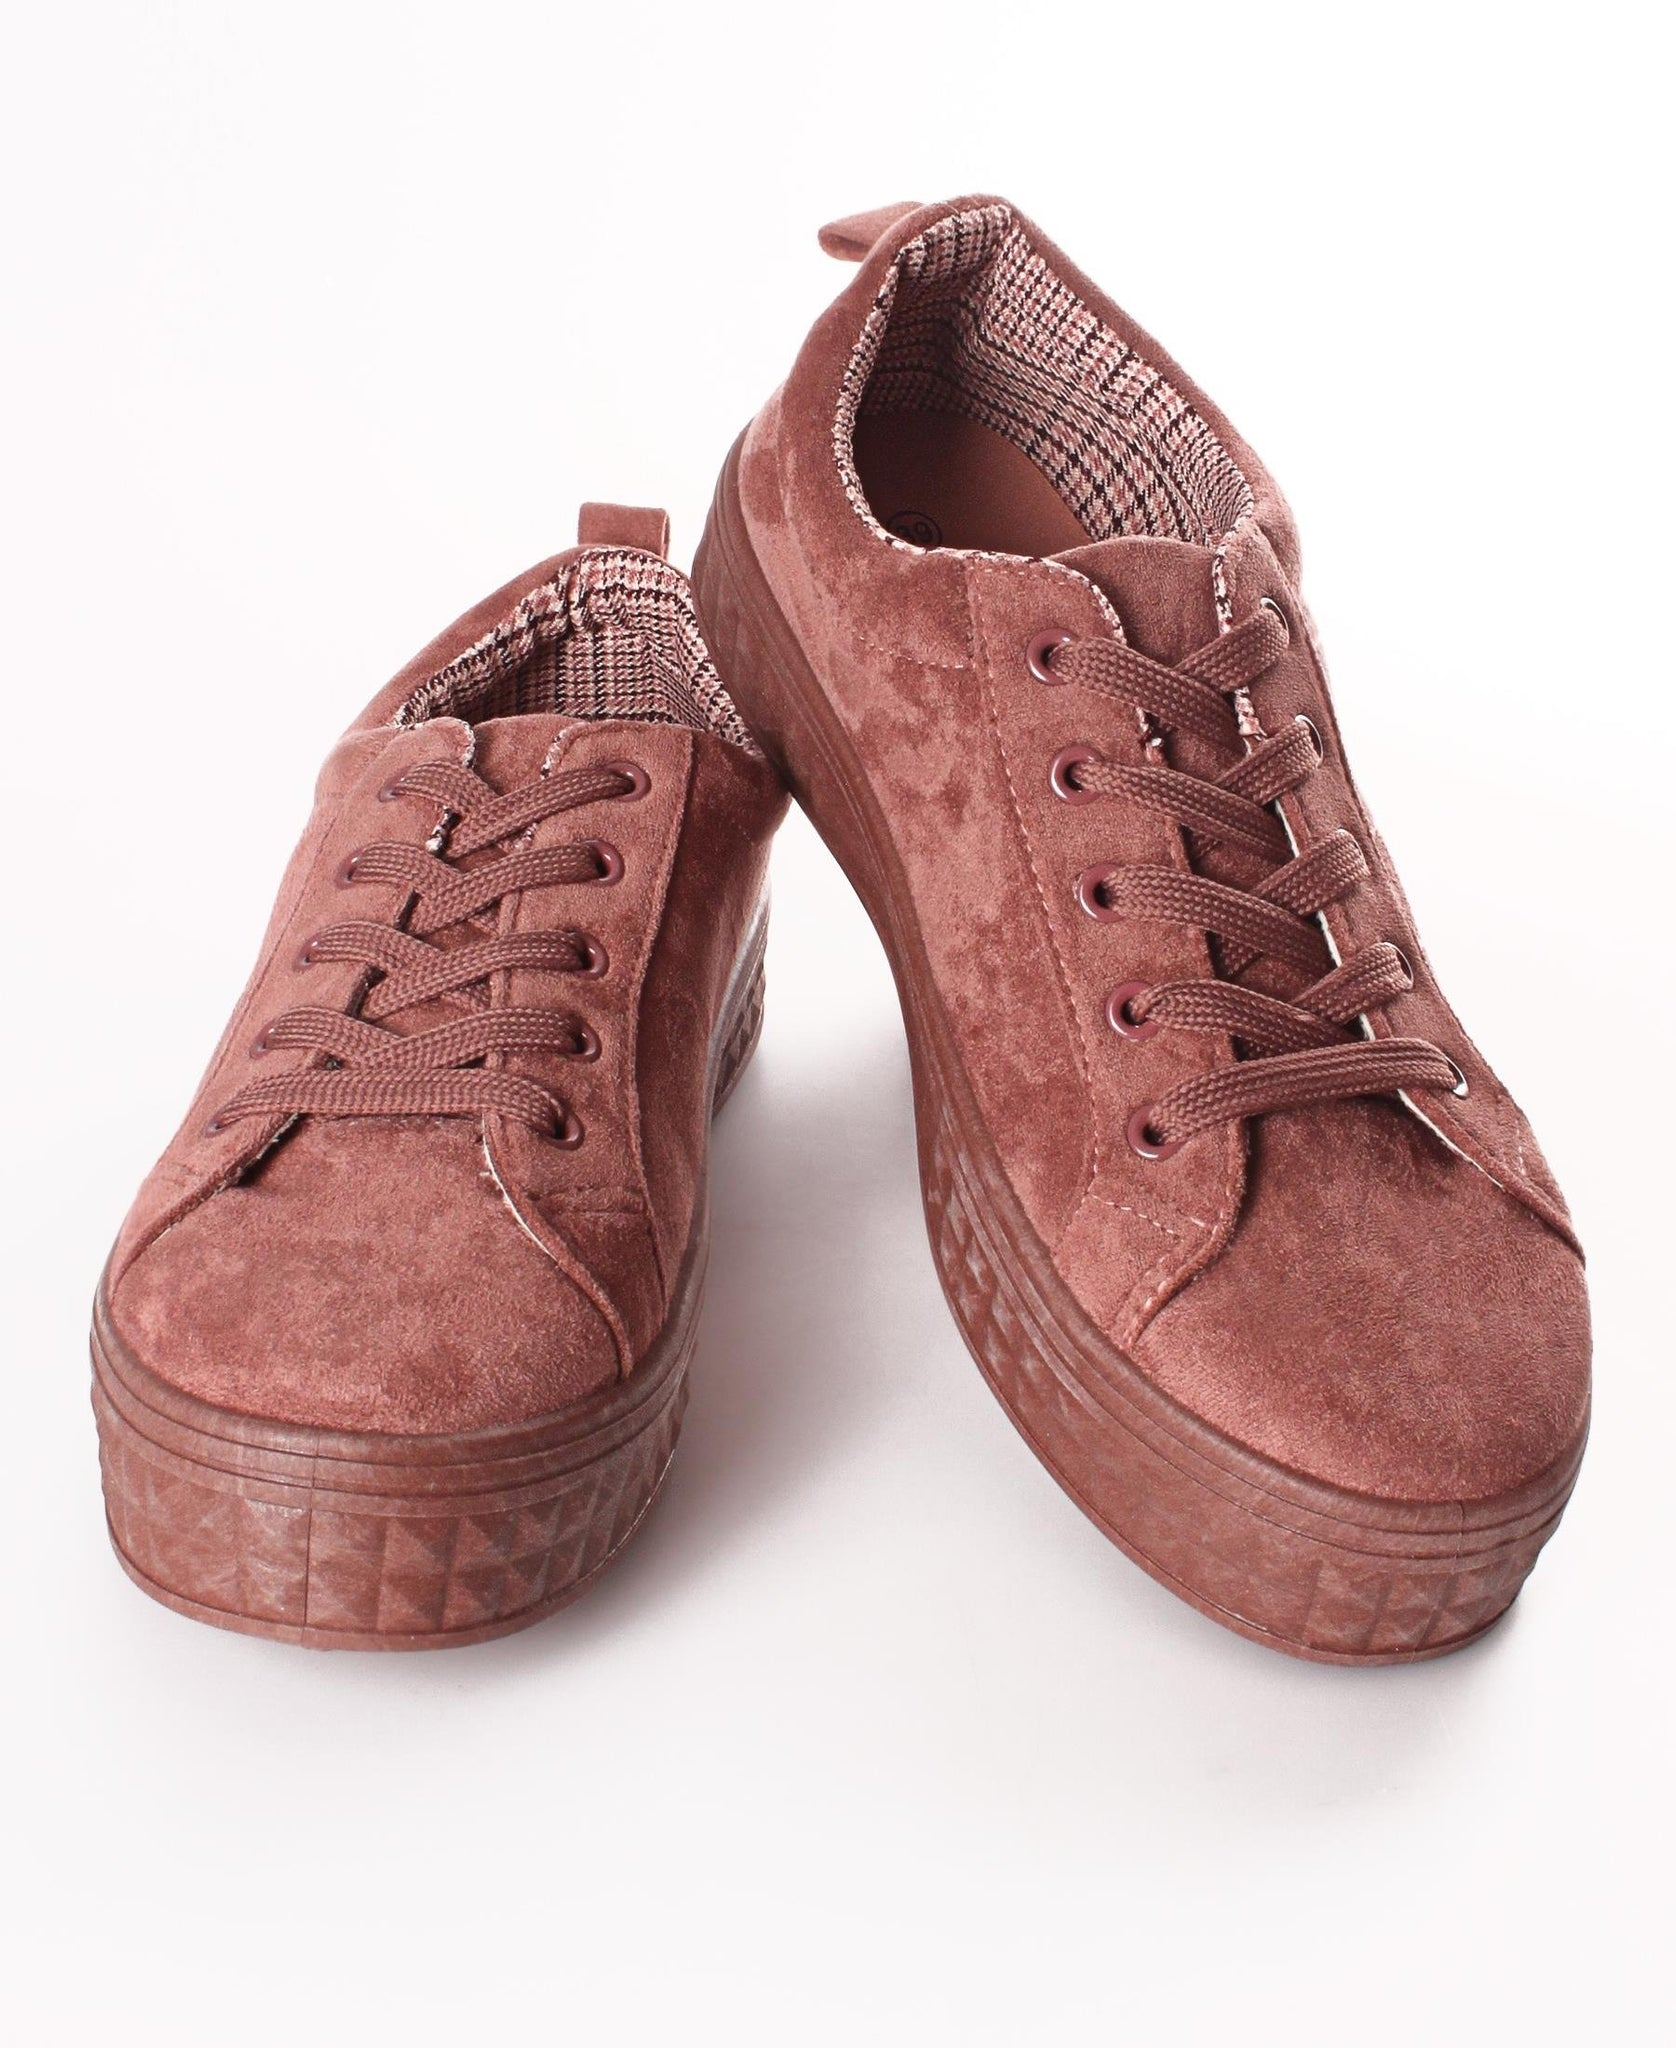 Ladies' Suede Feel Sneakers - Mink